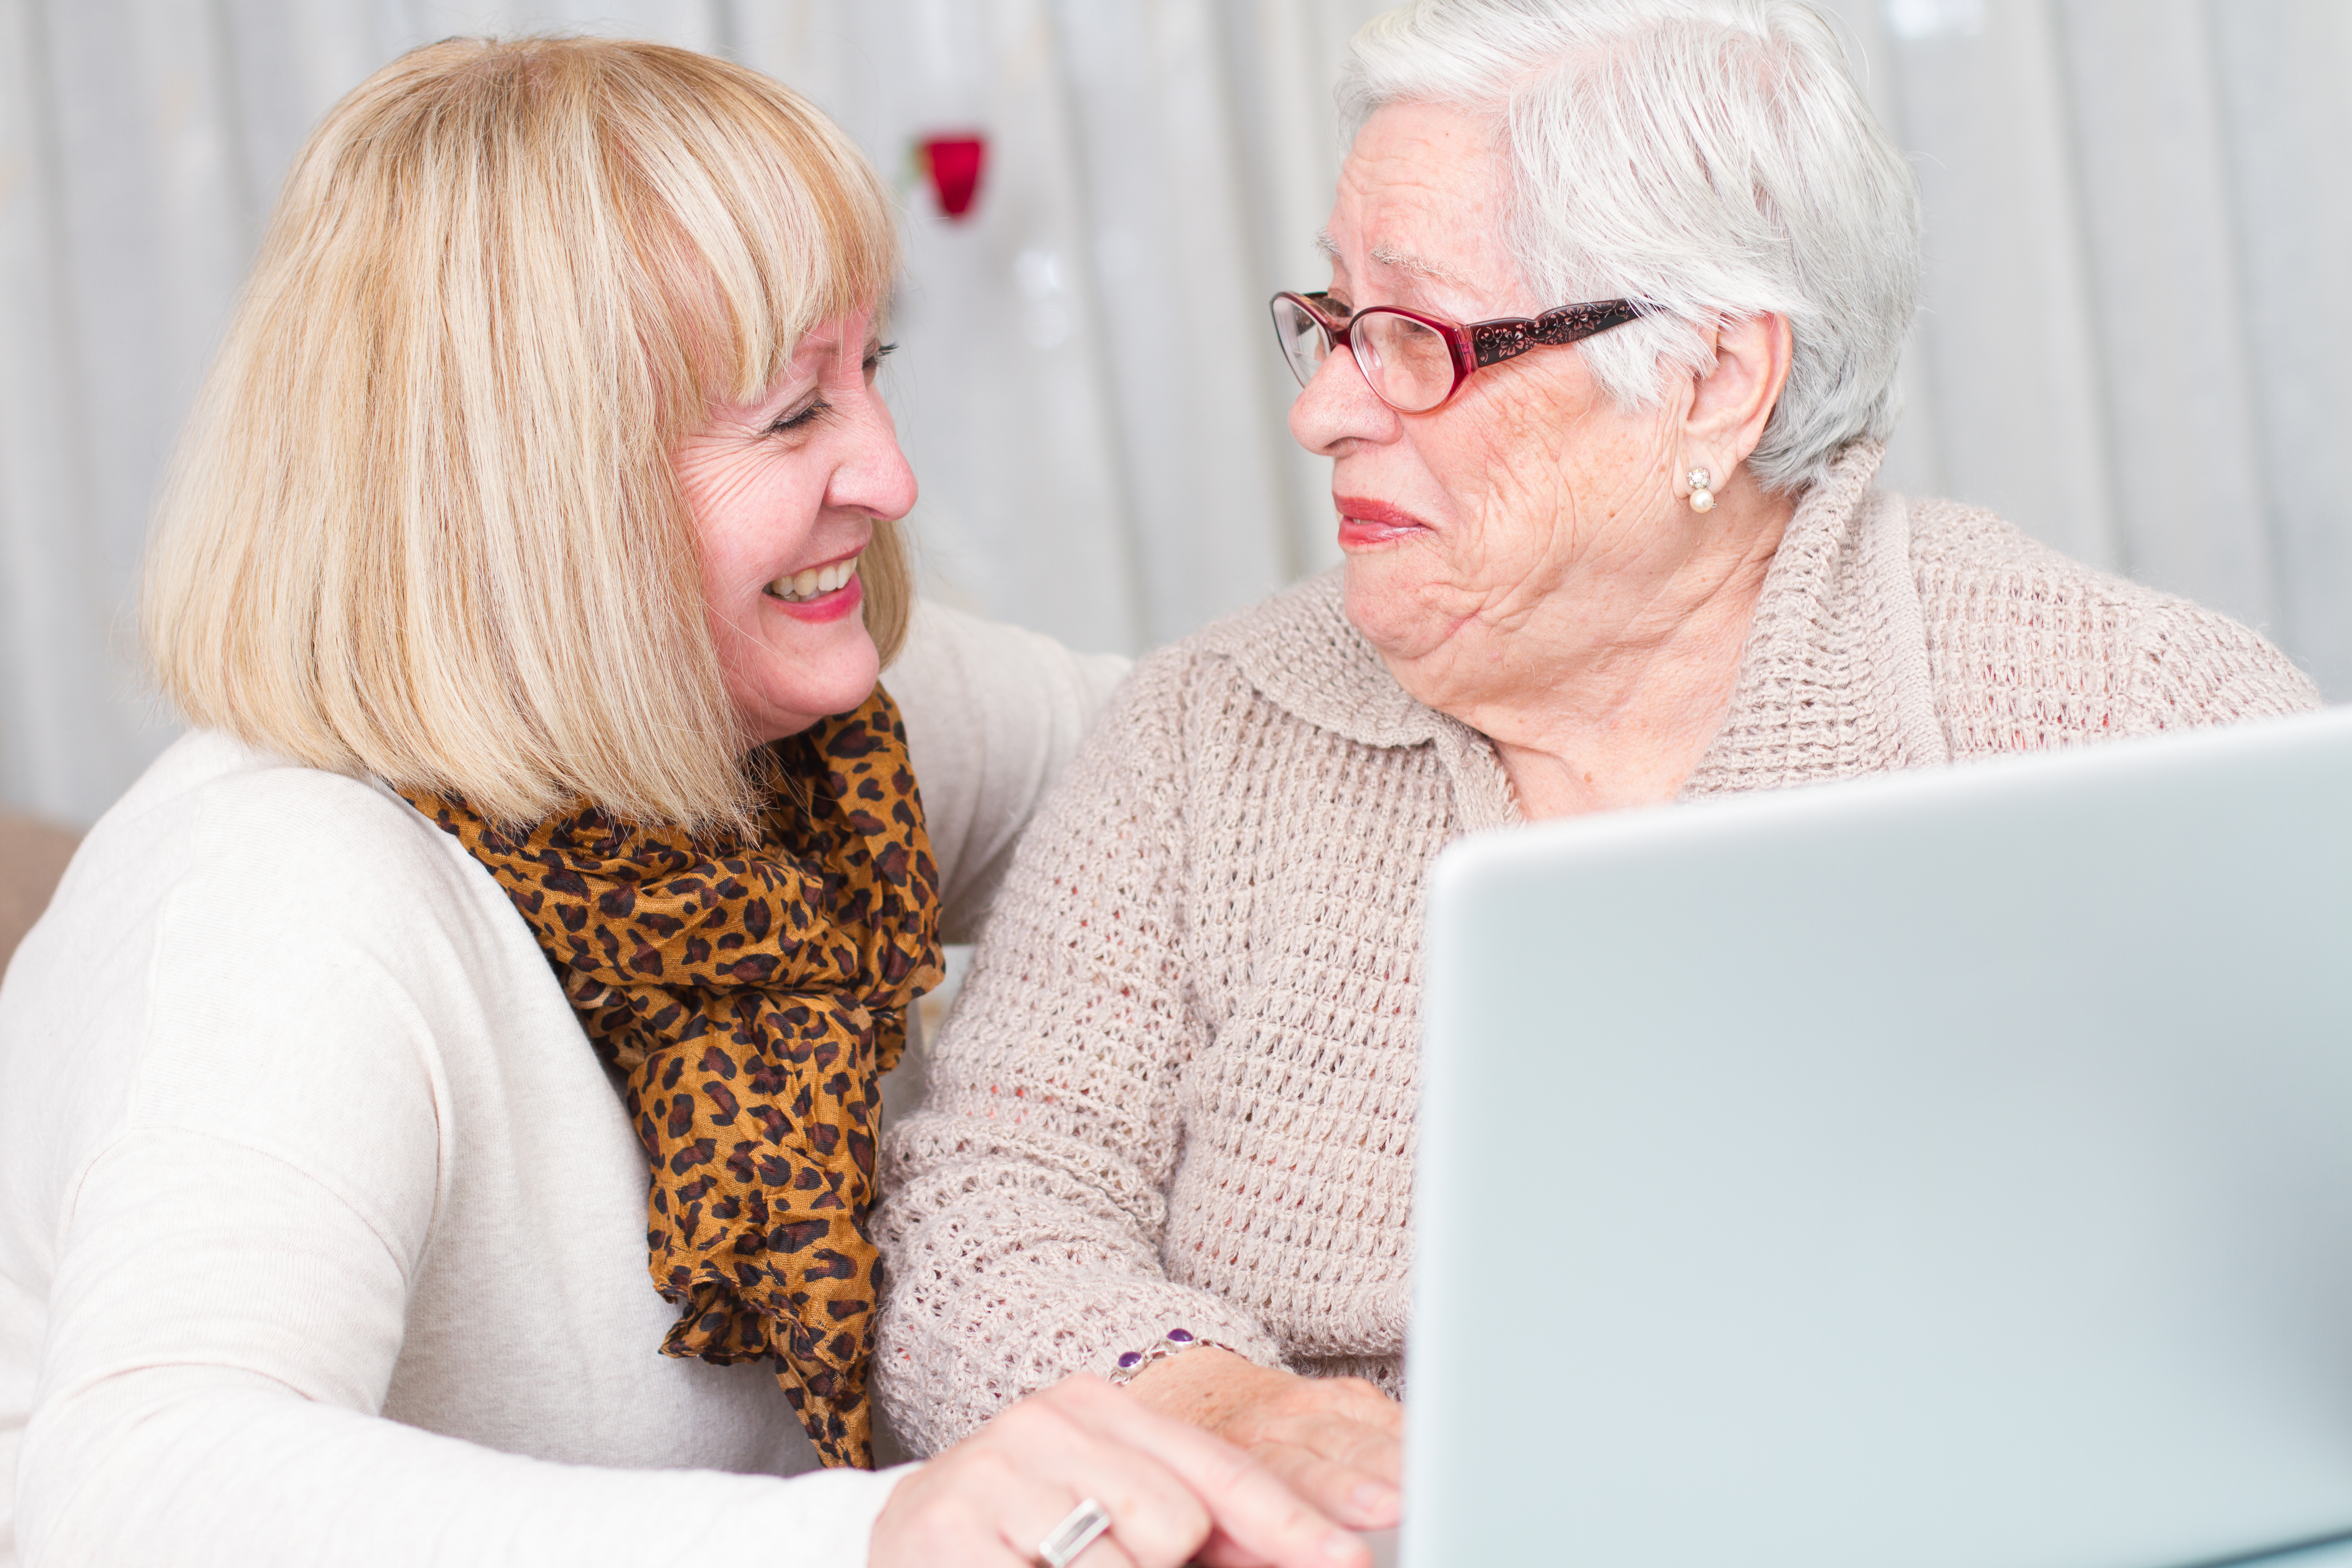 Learning Internet. Grandmother watching her daughter while teaches her elderly mother using a computer